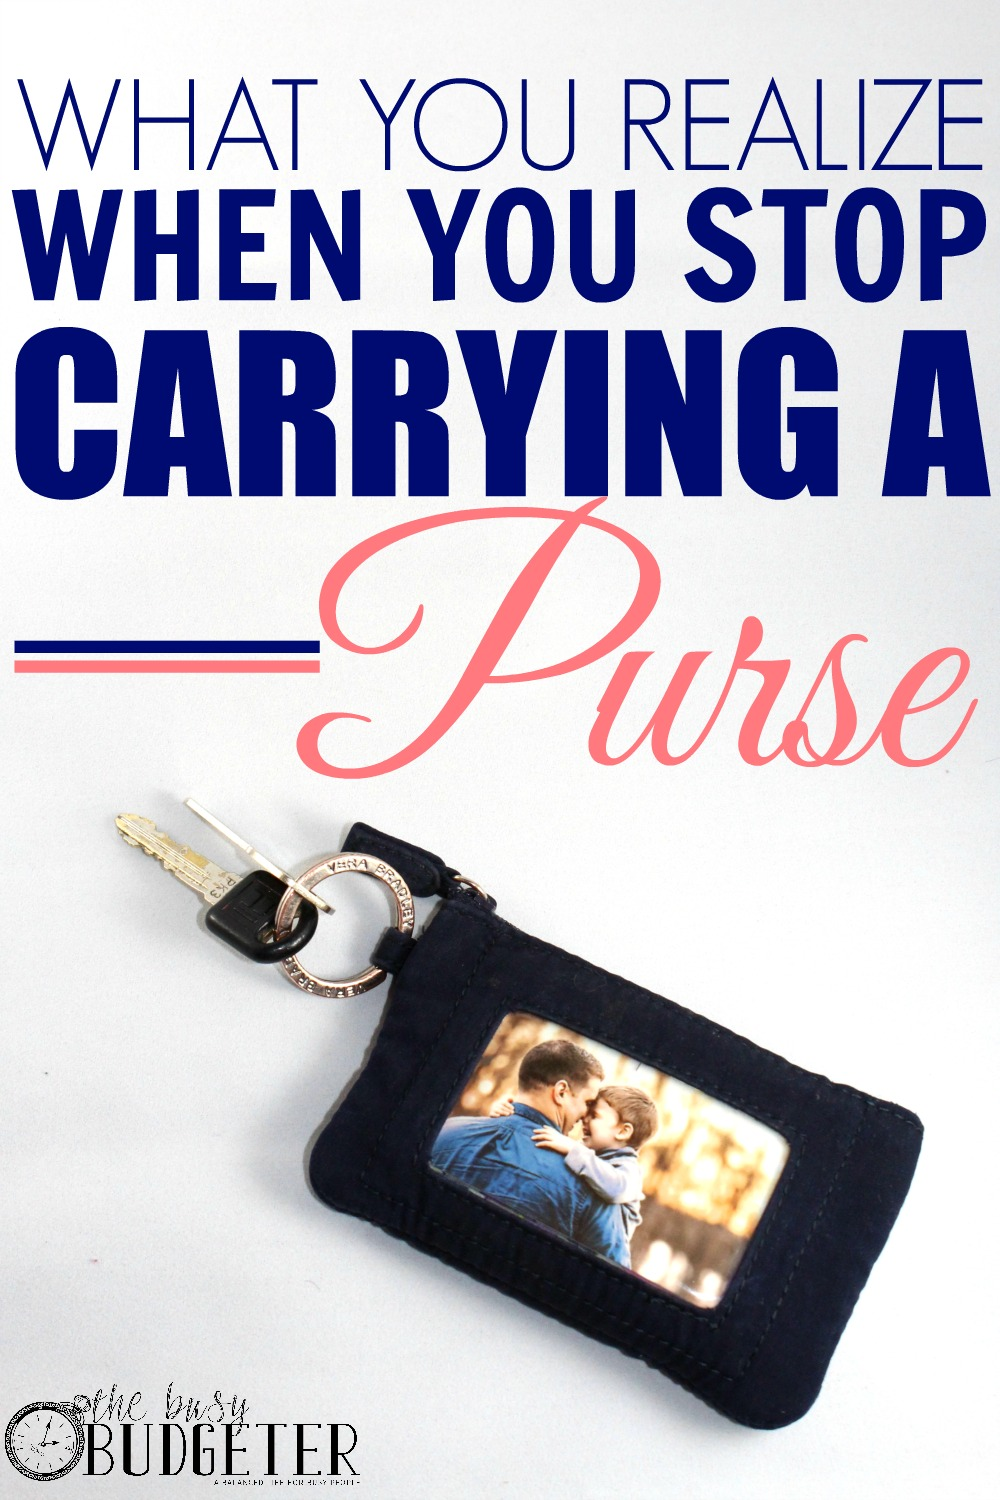 Ditch Your Purse: Seriously! Totally agree! My purse weighed like 10 pounds and was full of junk! It's so freeing to not have to lug that thing around anymore!